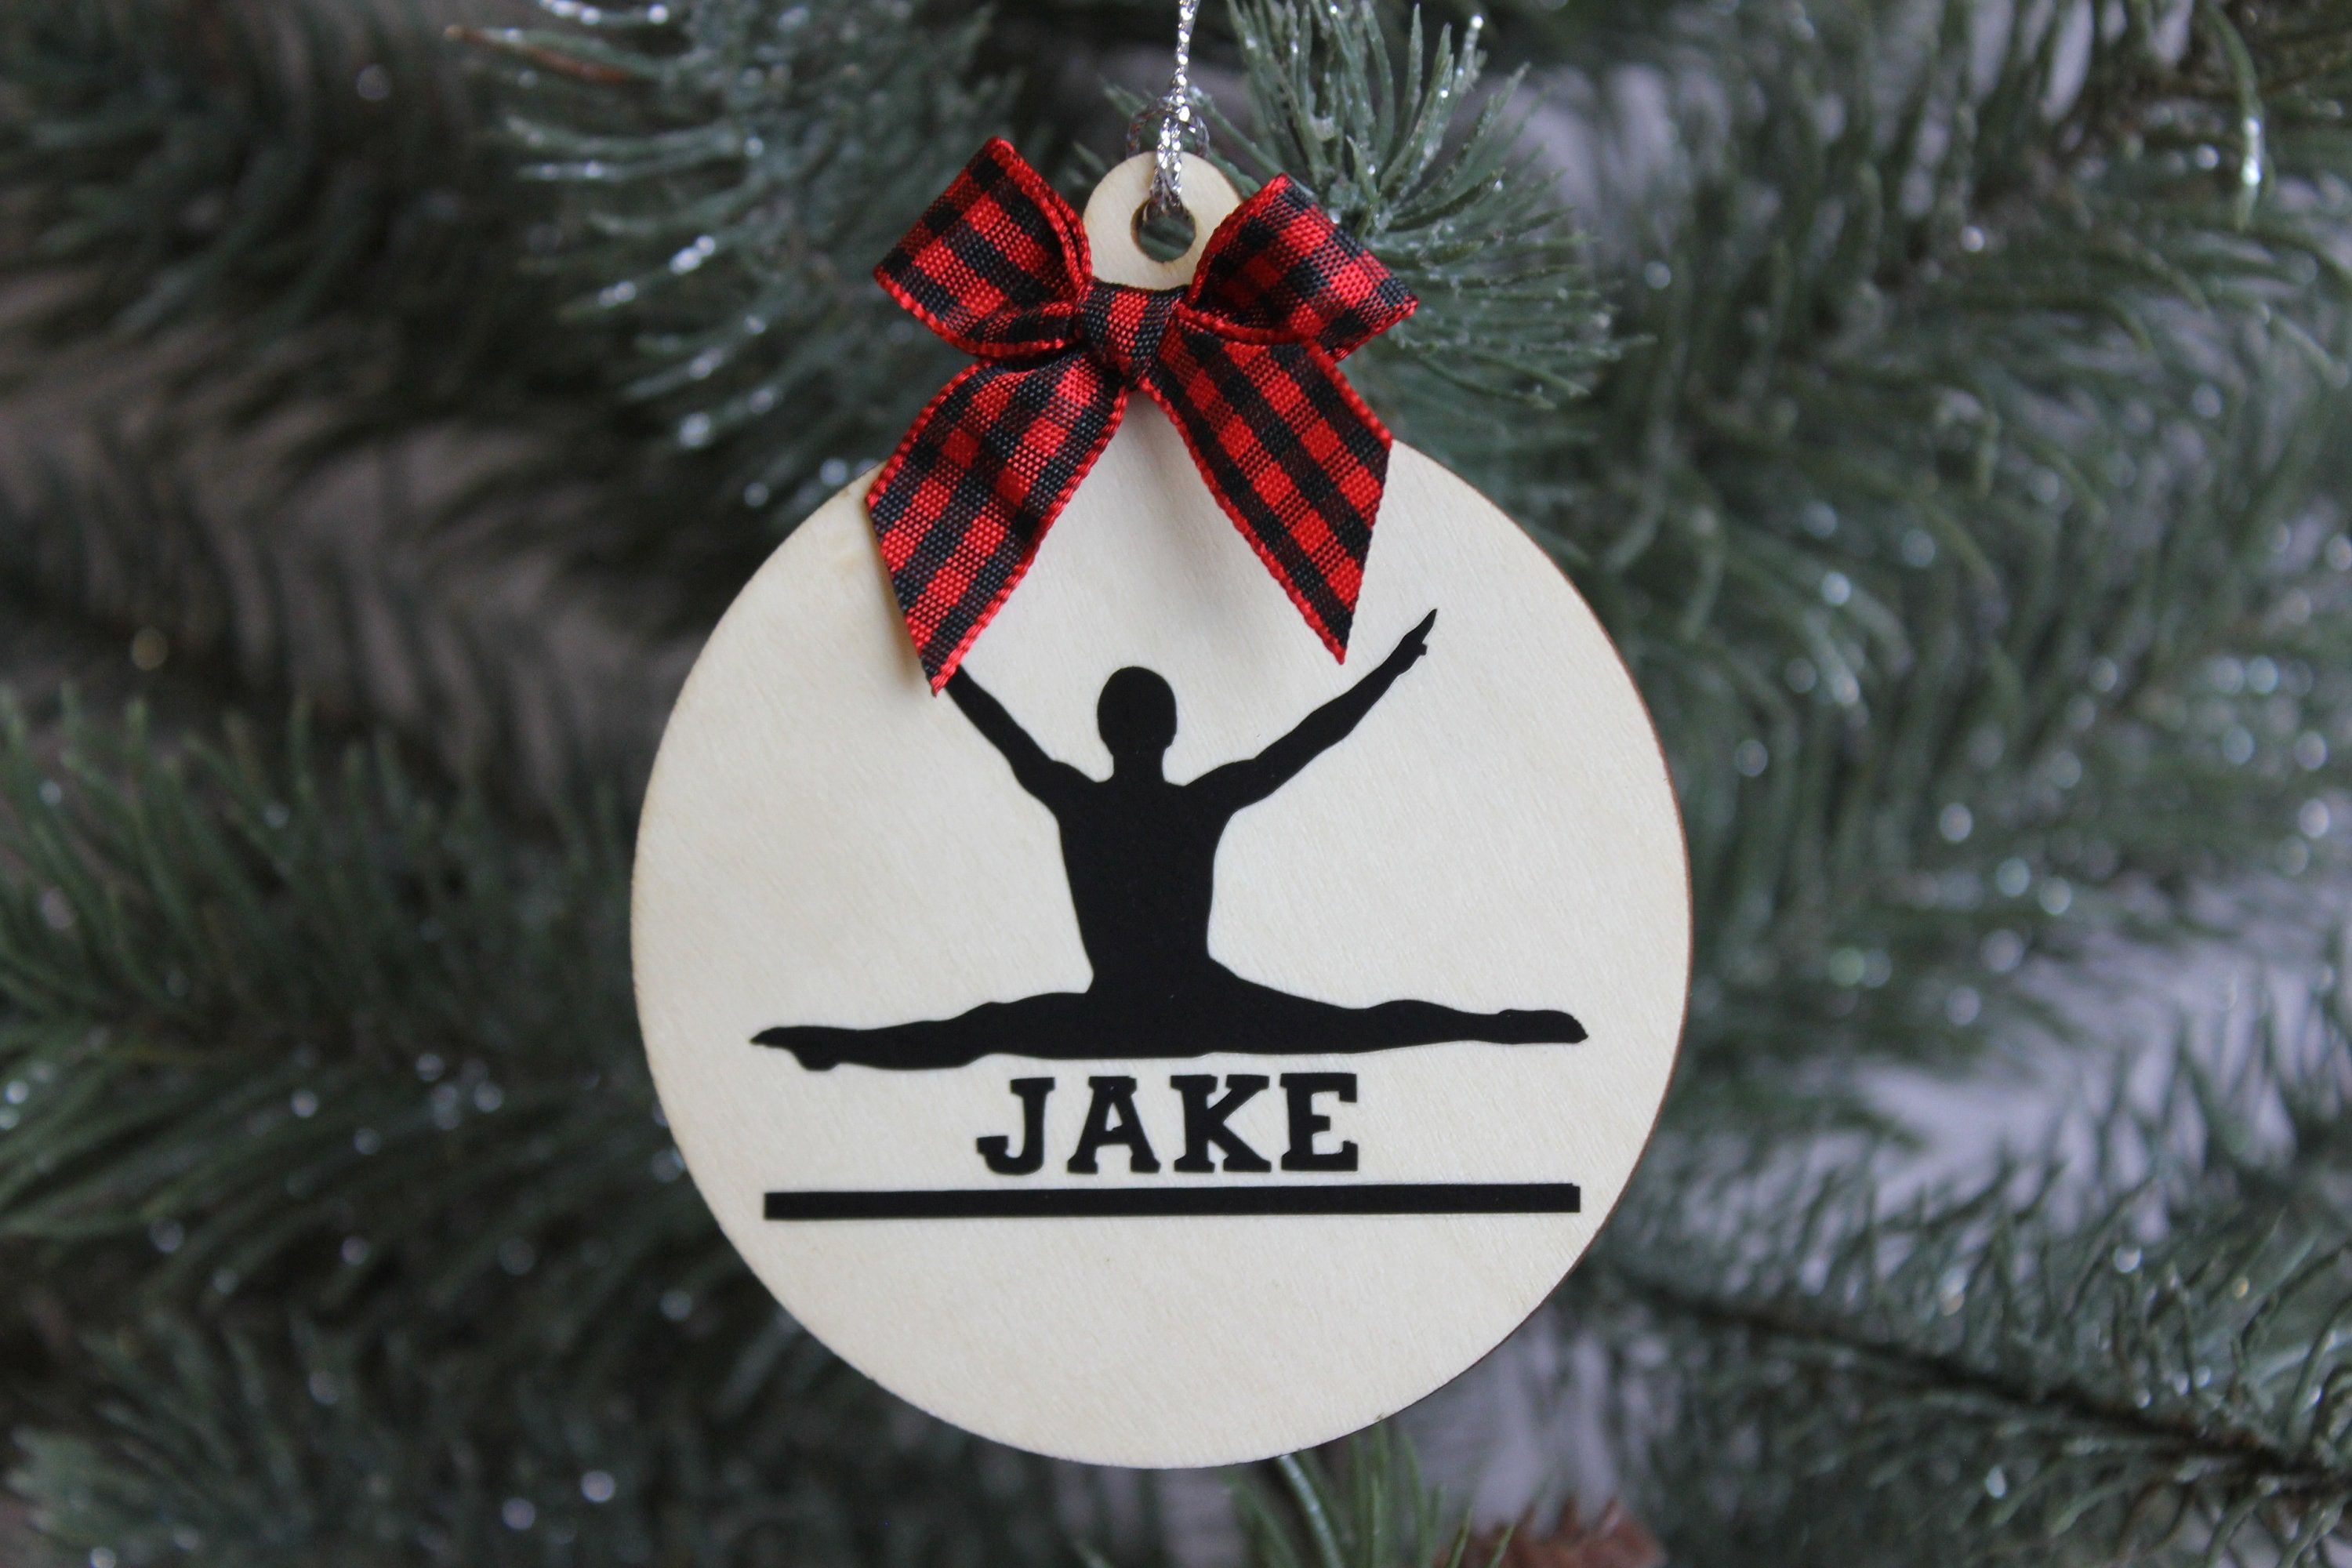 The ornament is made of a natural wood, heat transfer vinyl, ribbon, and lots of love:). They are approximately 2.7 - 3.5 inches in diameter and 2.5 mm thick. They come with tinsel string for easy hanging. All ornaments will come in a decorative bag for easy gift giving. *DISCLAIMERS* This is not a toy. For decoration only.